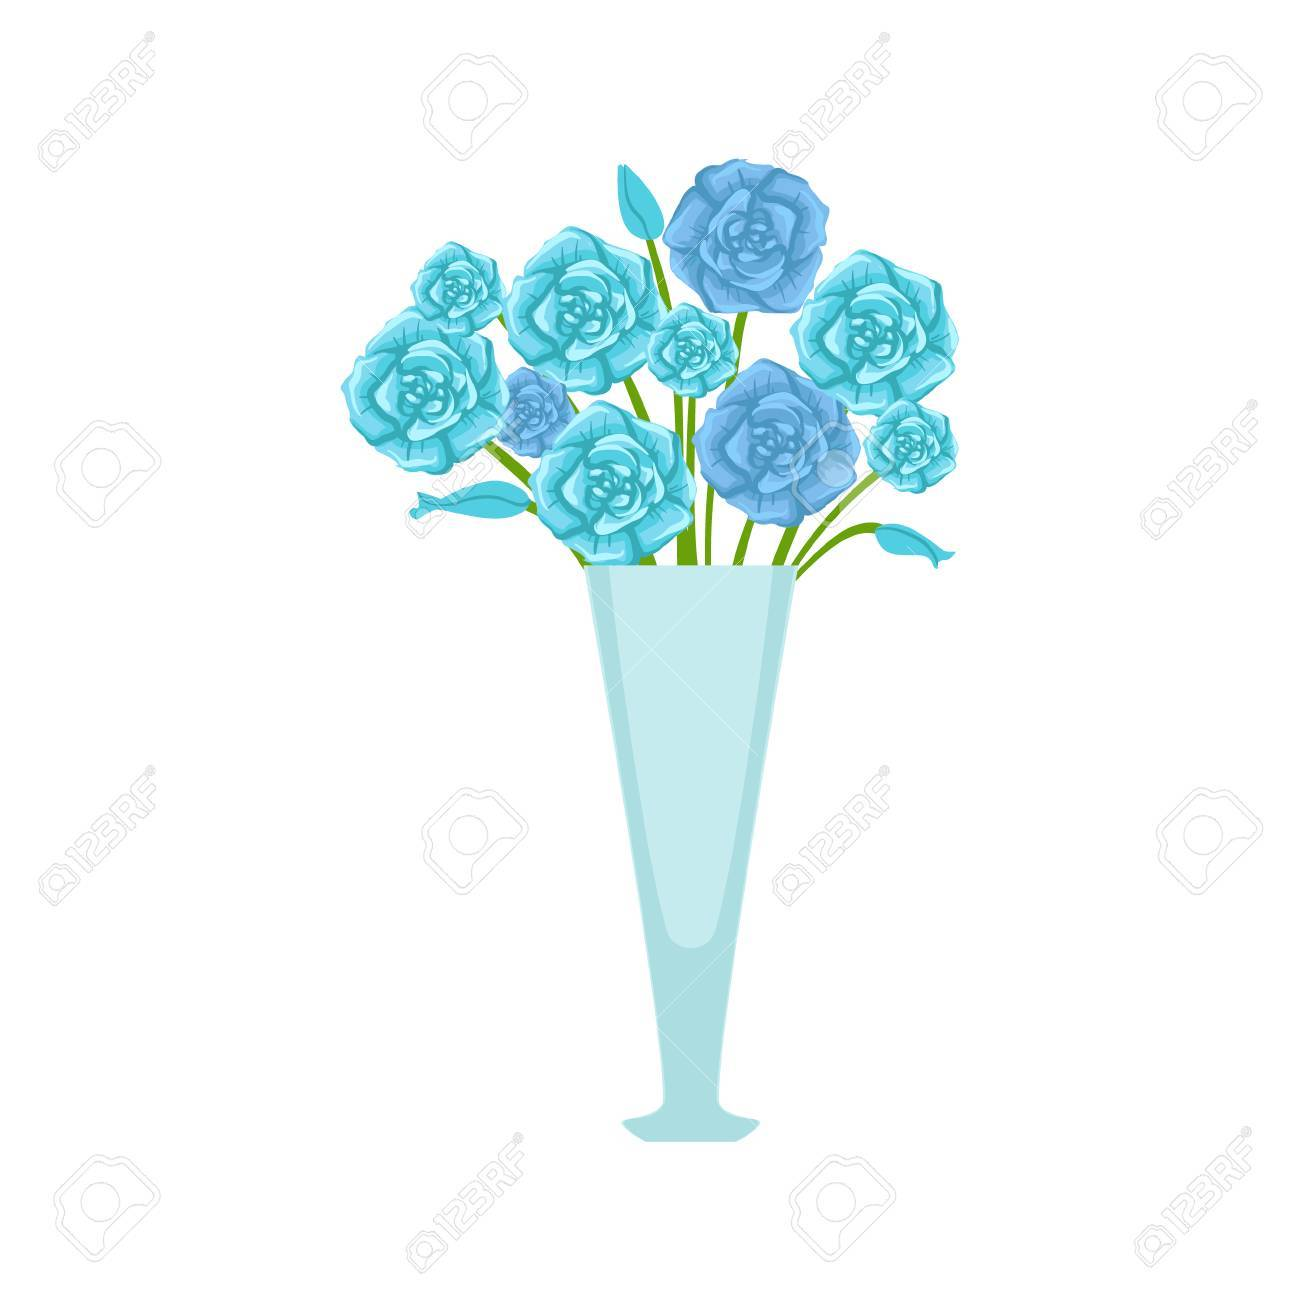 Blue Roses Flower Bouquet In Tall Flower Vase Flower Shop Decorative Royalty Free Cliparts Vectors And Stock Illustration Image 67198361